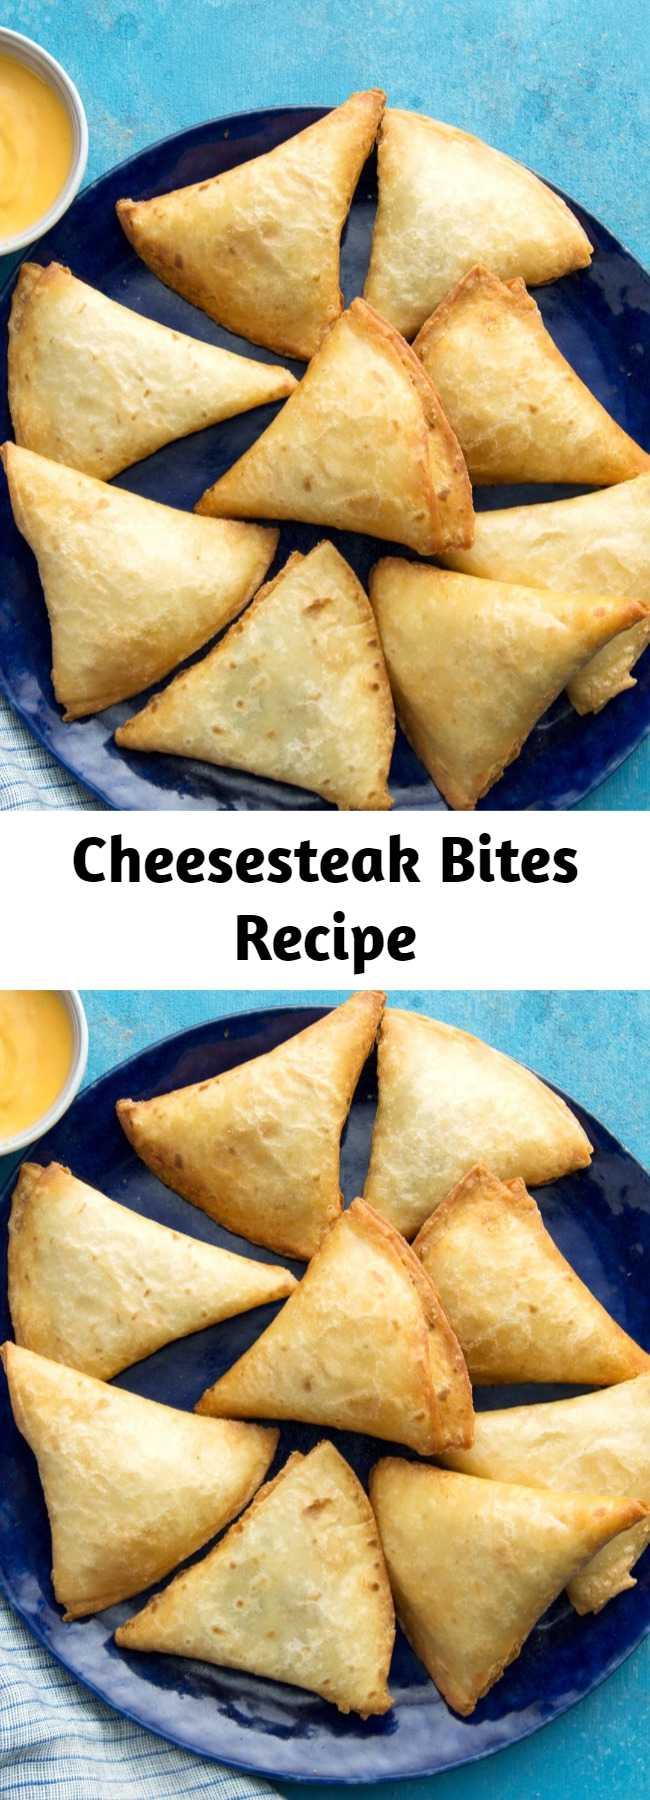 Cheesesteak Bites Recipe - Lil' pockets of flavorful beef, cheese, and pure joy. Happy snacking!